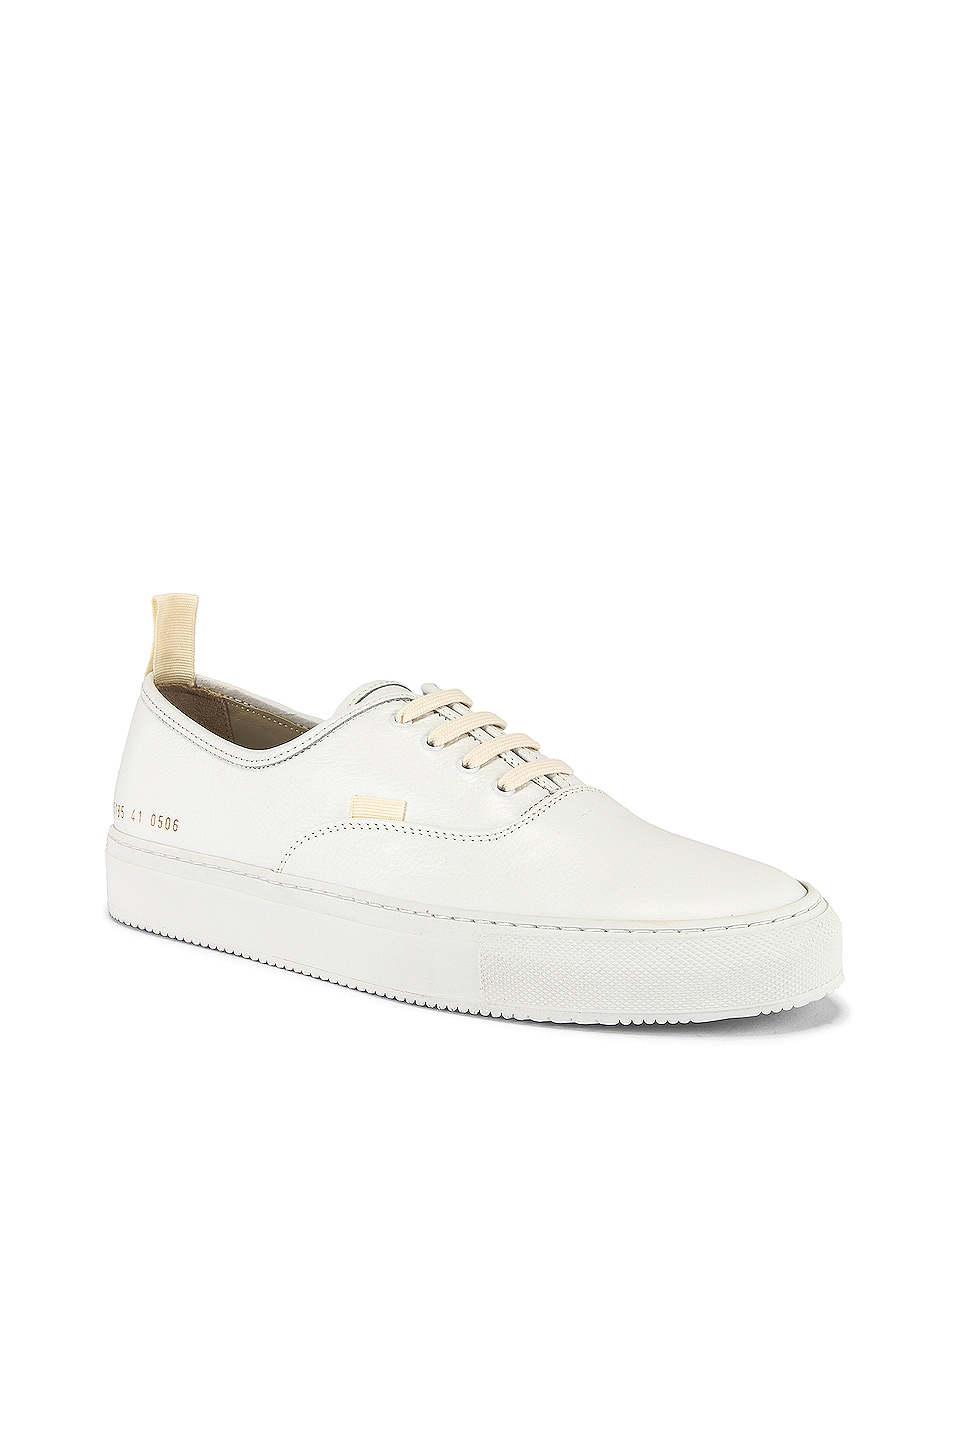 Image 1 of Common Projects Four Hole in Leather Low Sneaker in White